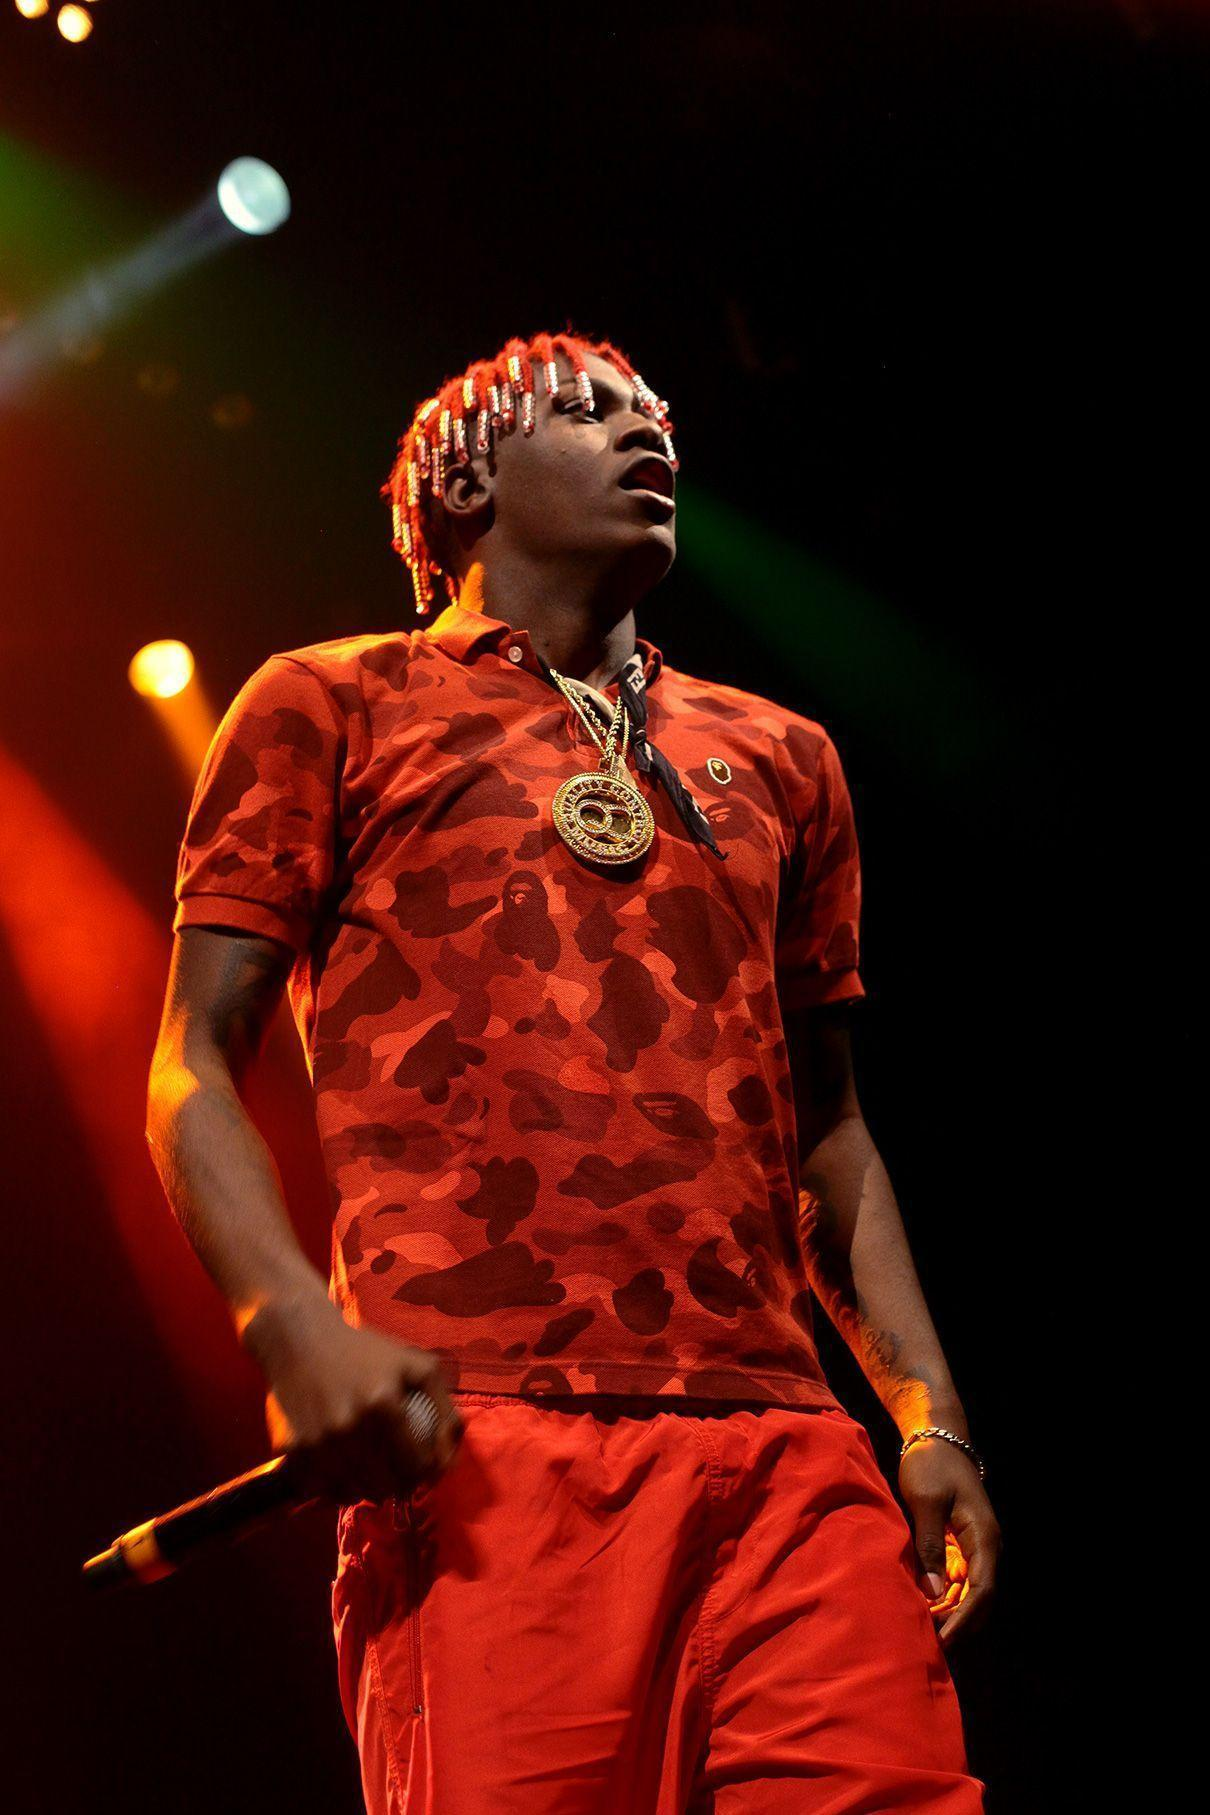 Free Download Lil Yachty Iphone Wallpapers Top Lil Yachty